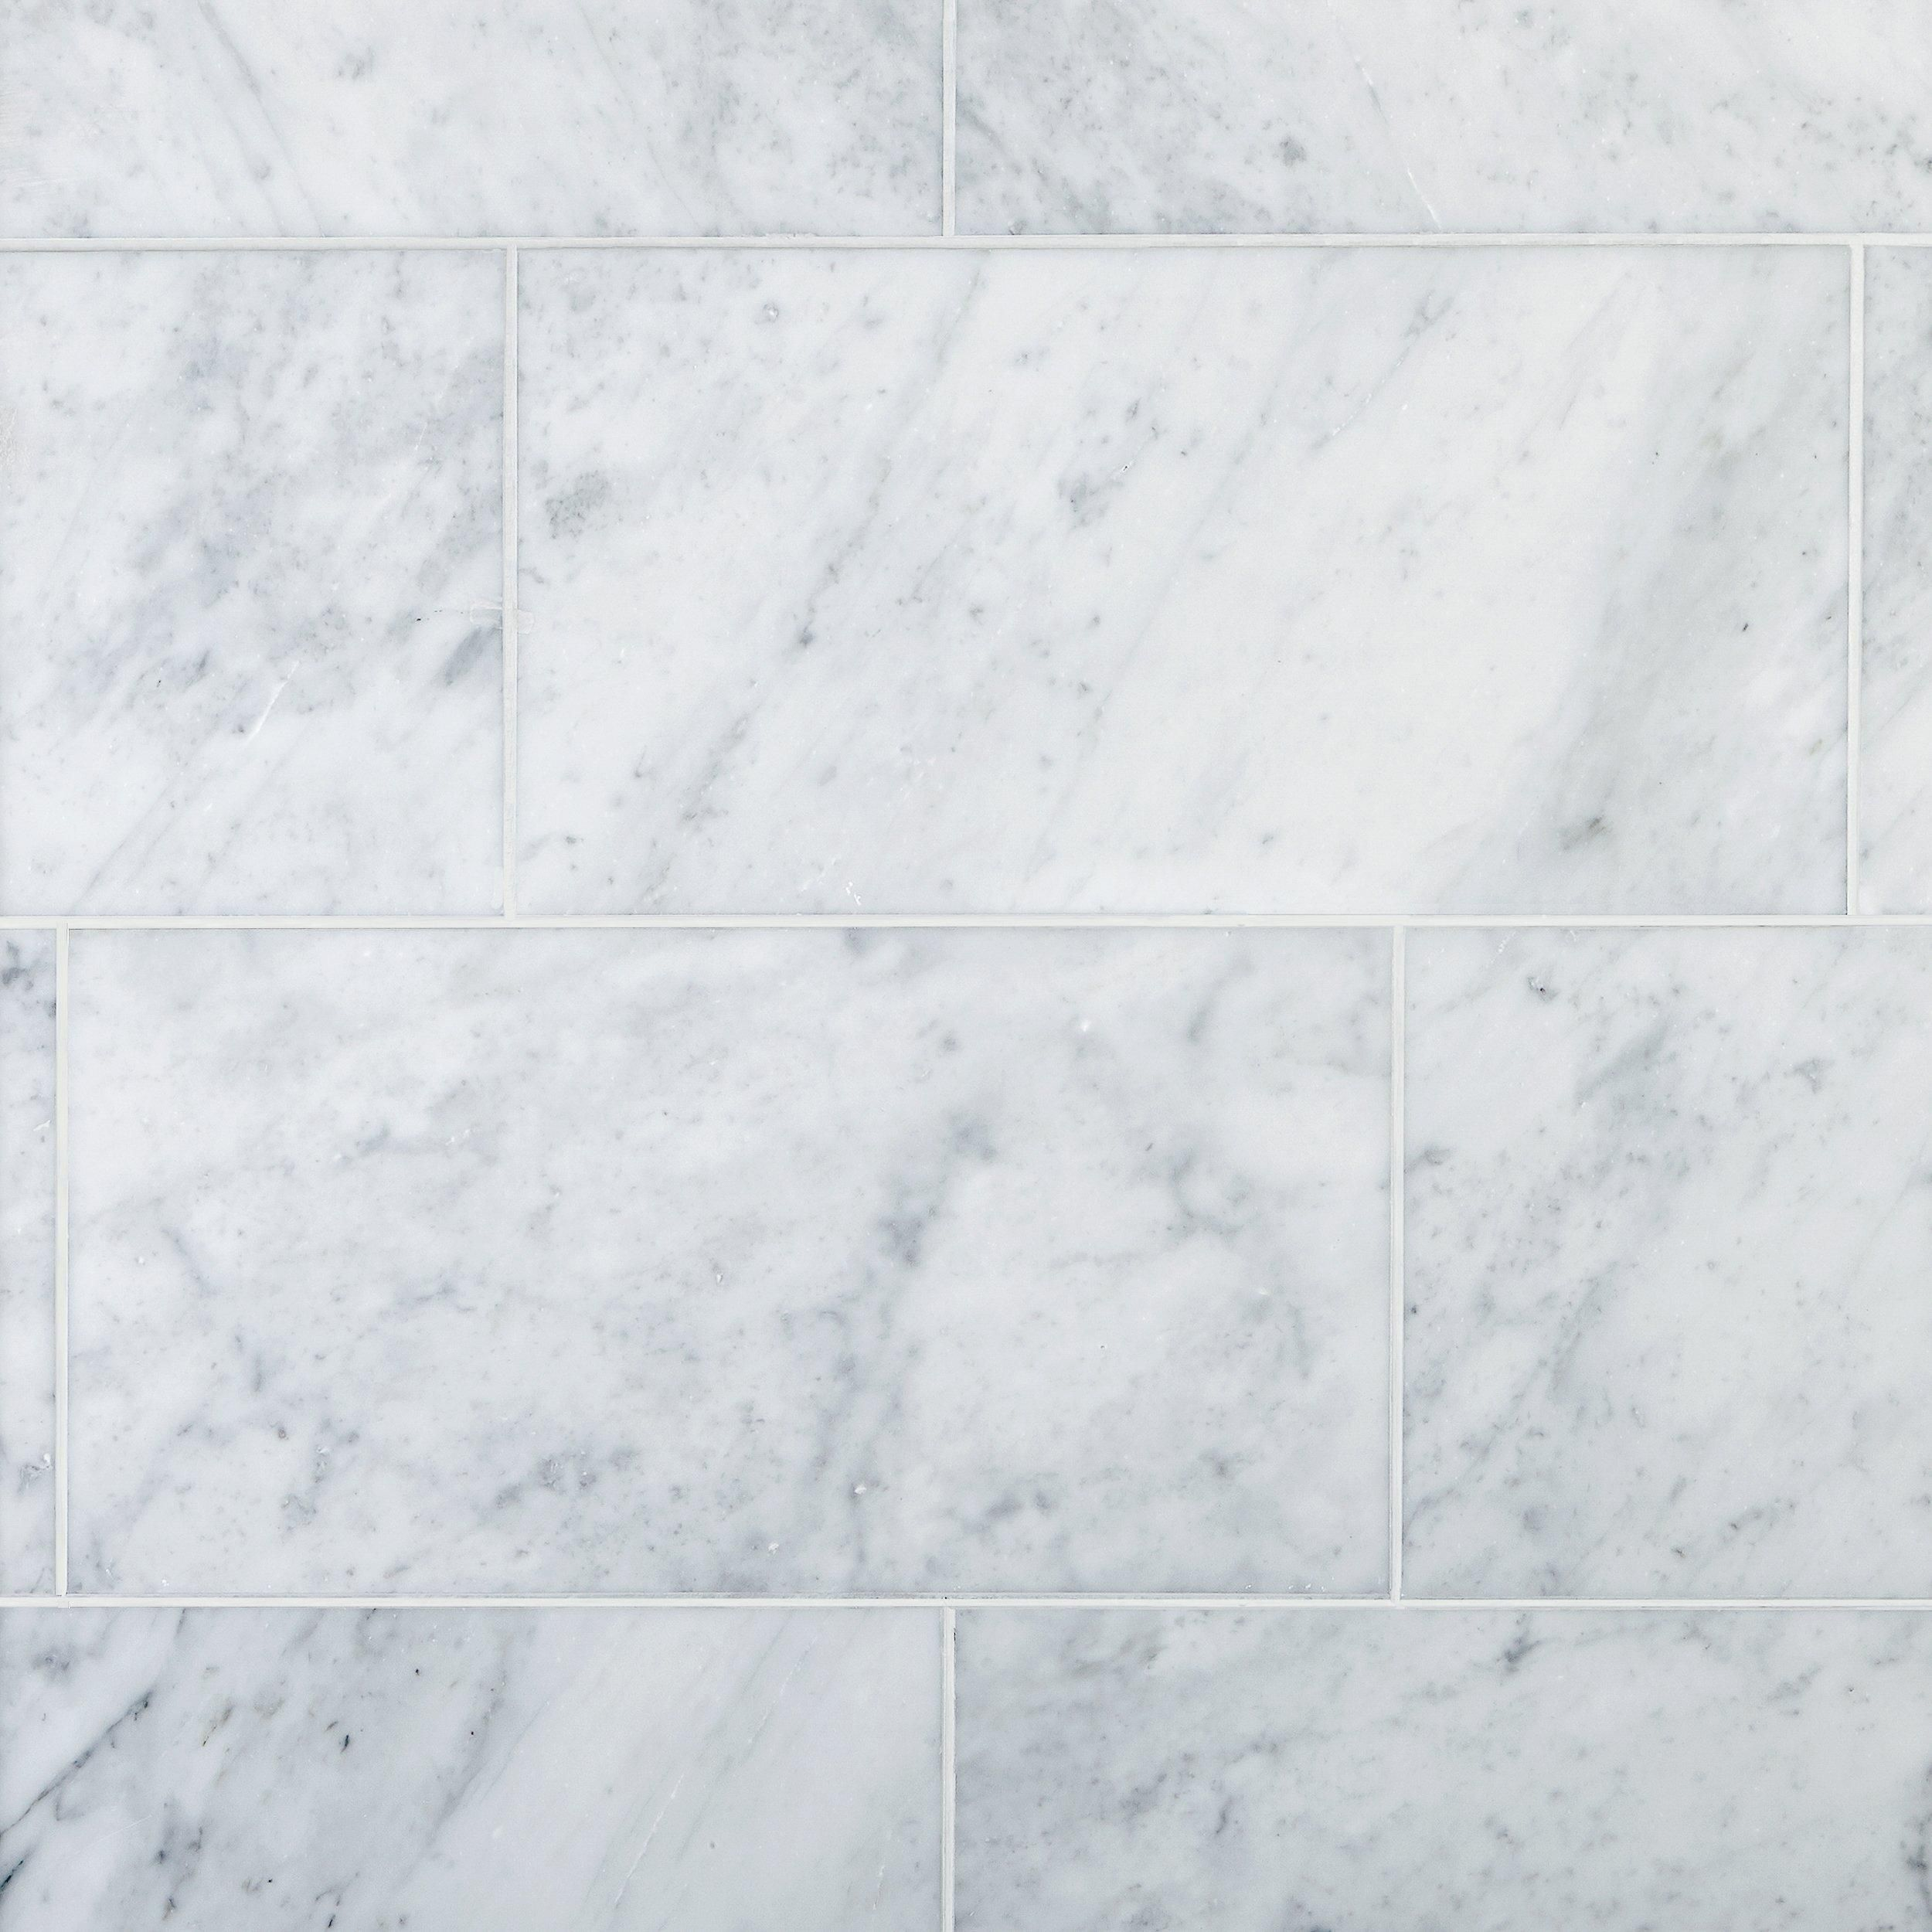 Bianco Carrara Honed Marble Tile In 2020 Honed Marble Tiles Honed Marble Carrara Marble